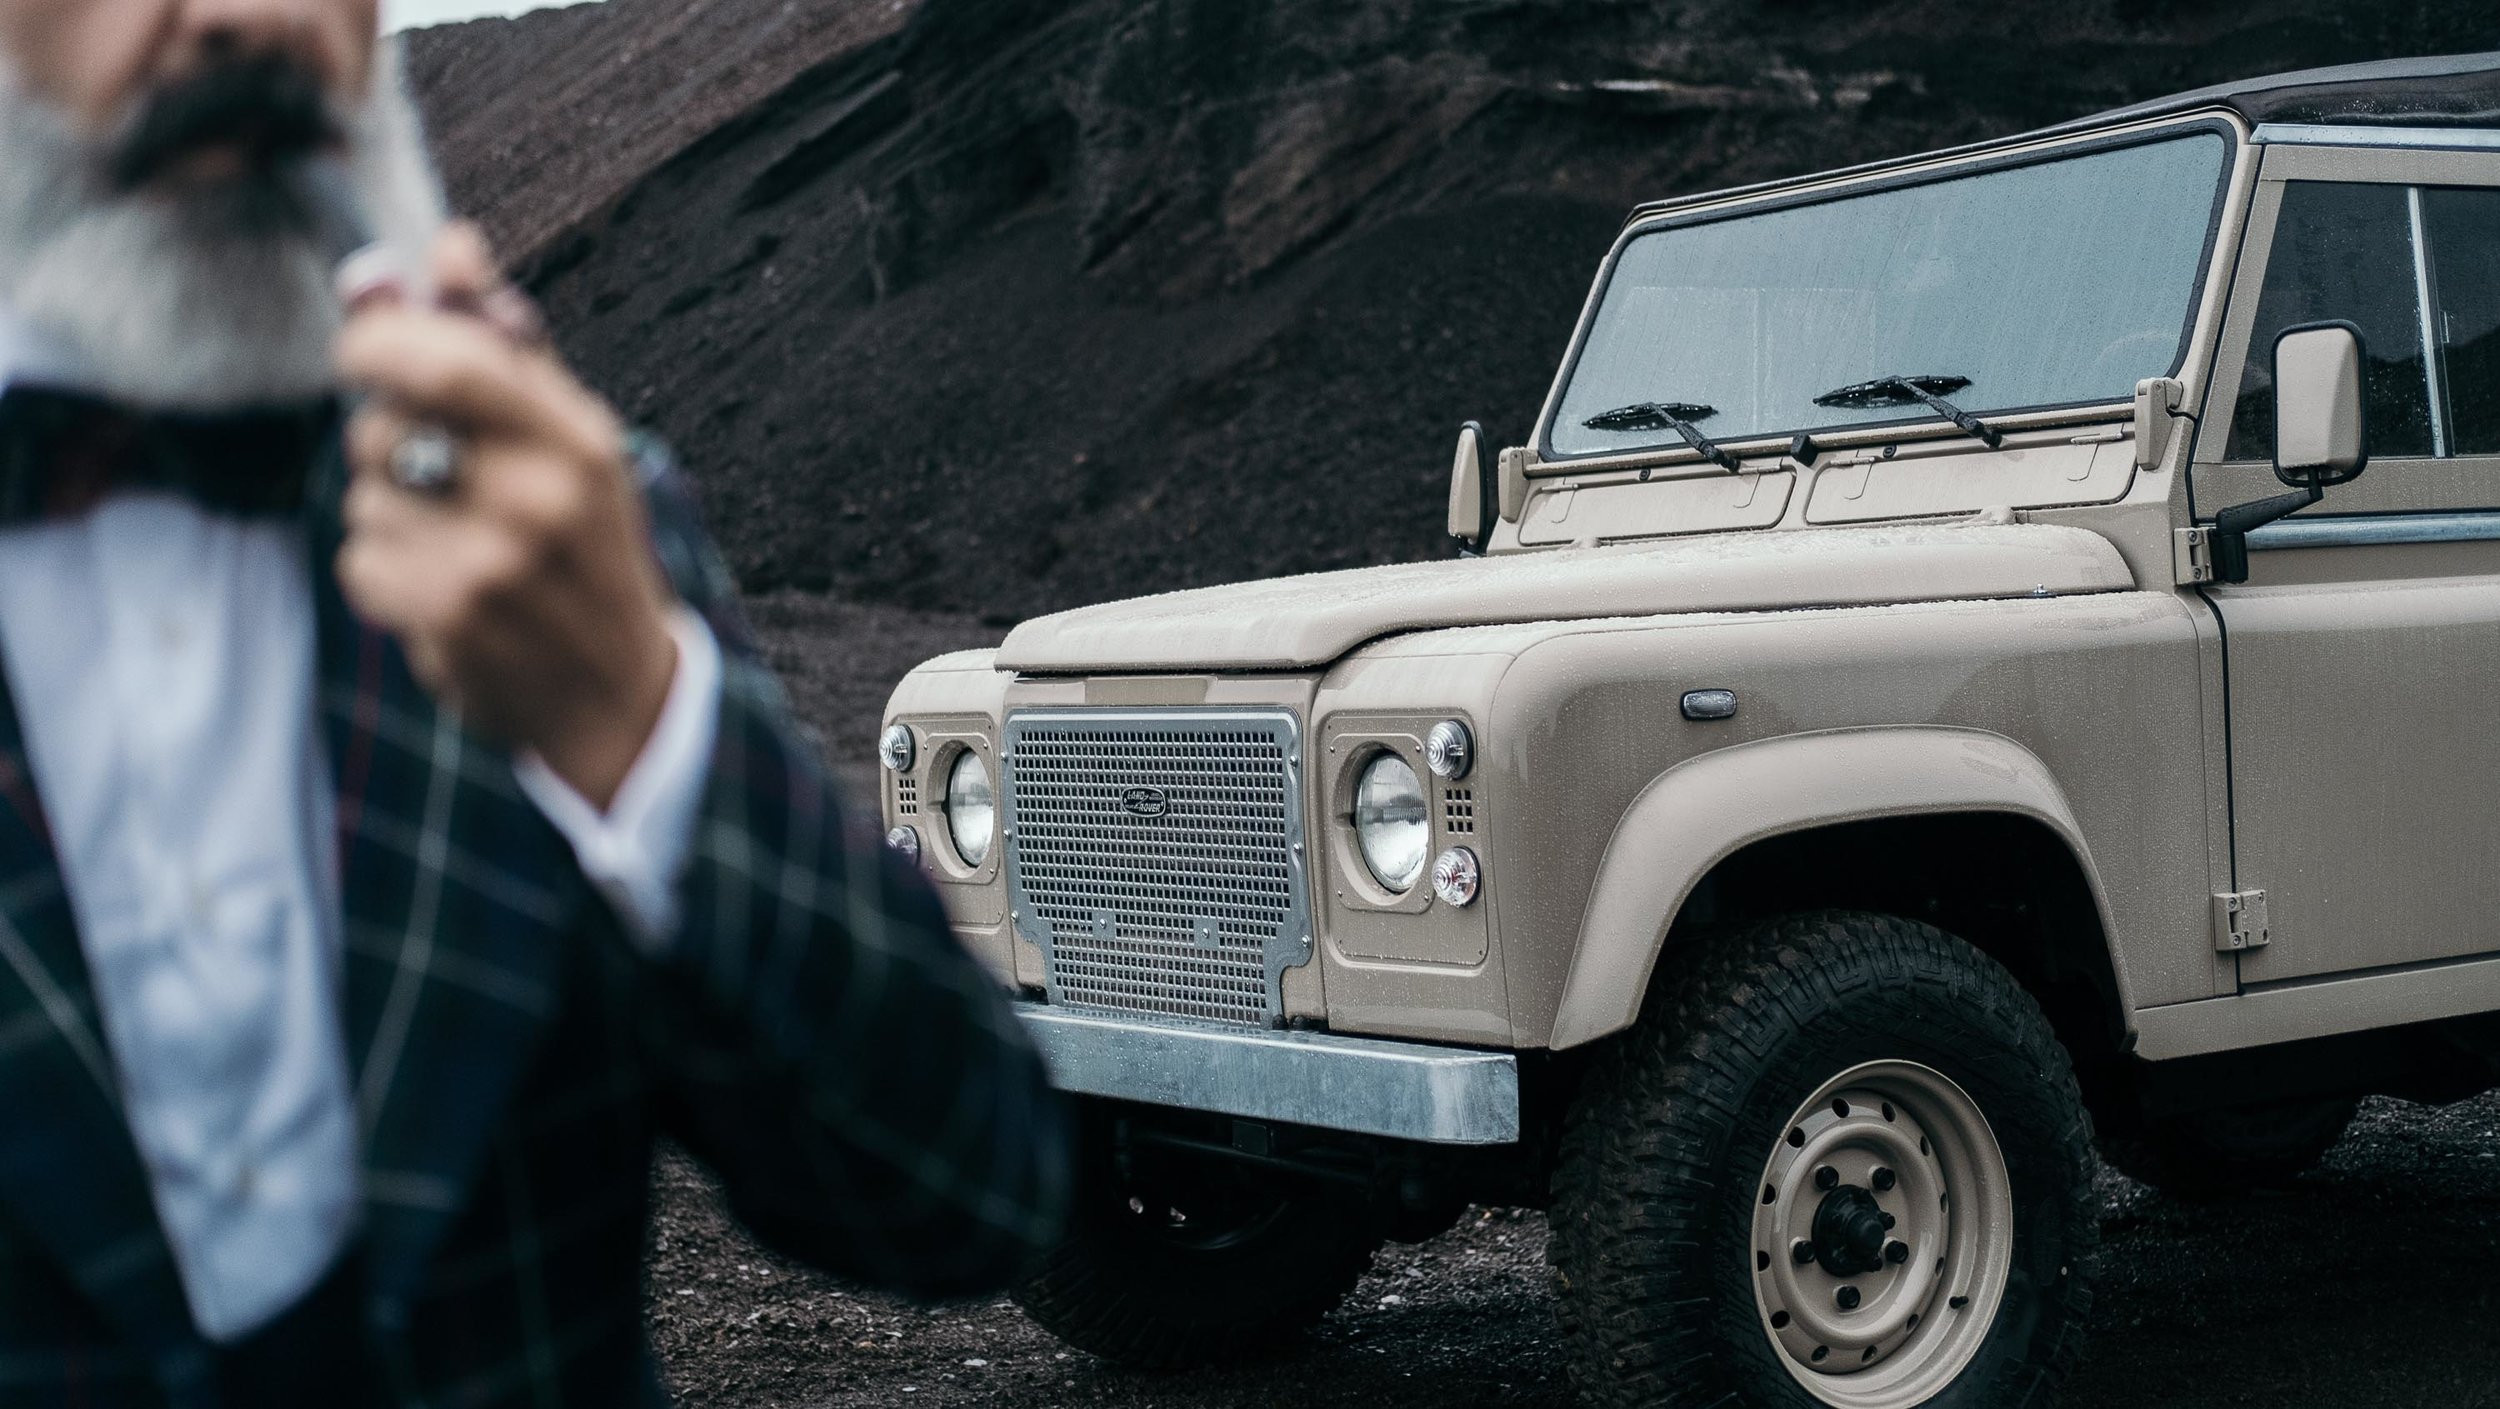 coolnvintage Land Rover Defender Dandy (37 of 41).jpg